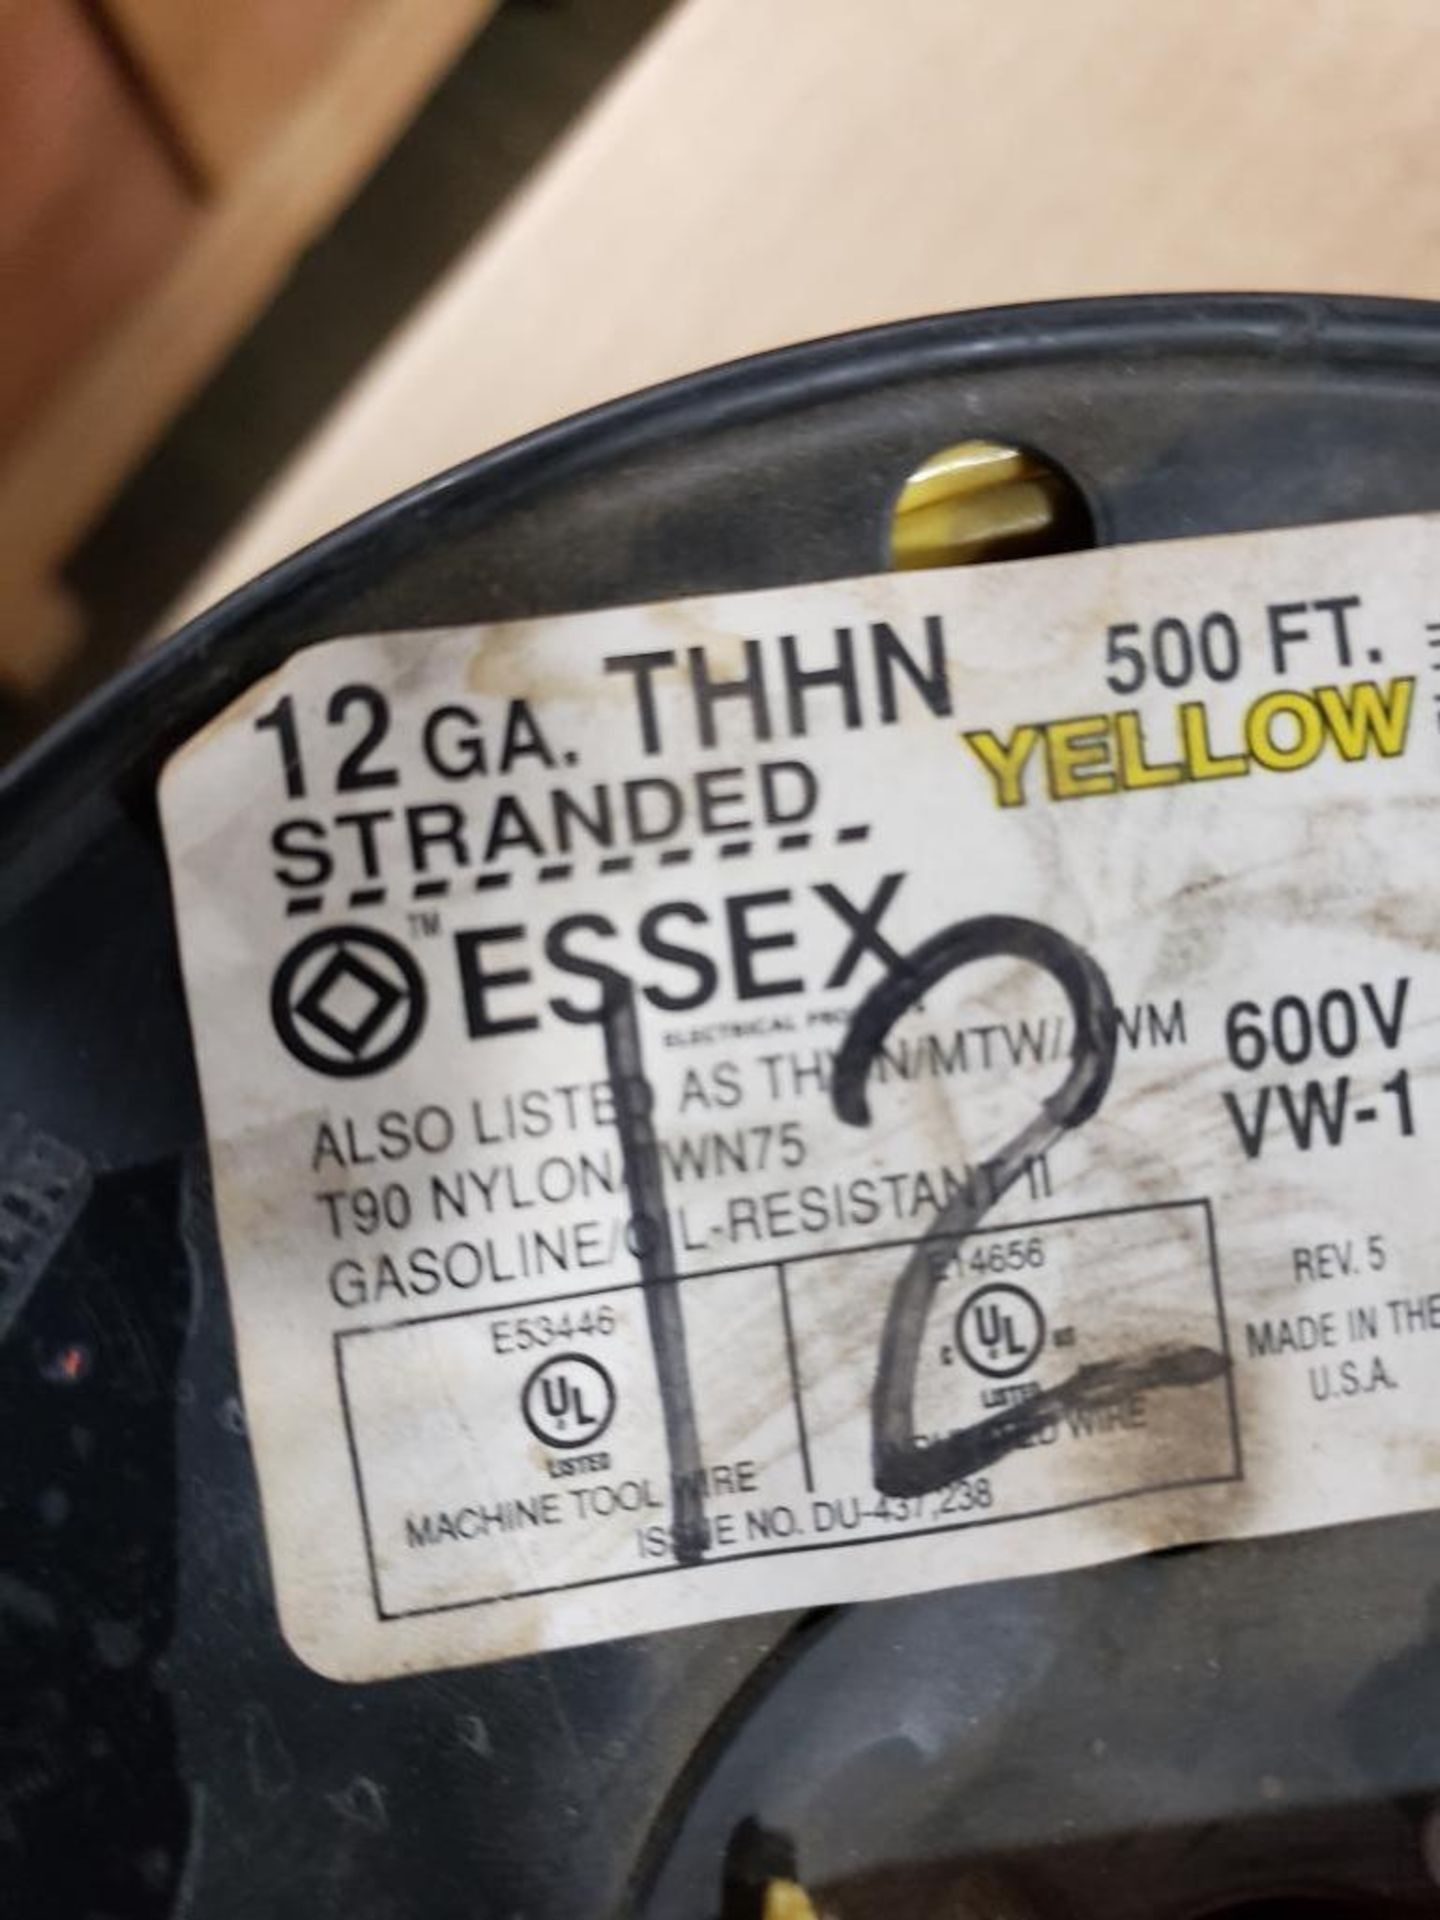 Qty 3 - Spool of ESSEX contractor wire. 12-RED THHN stranded, 10-WHITE. - Image 4 of 6